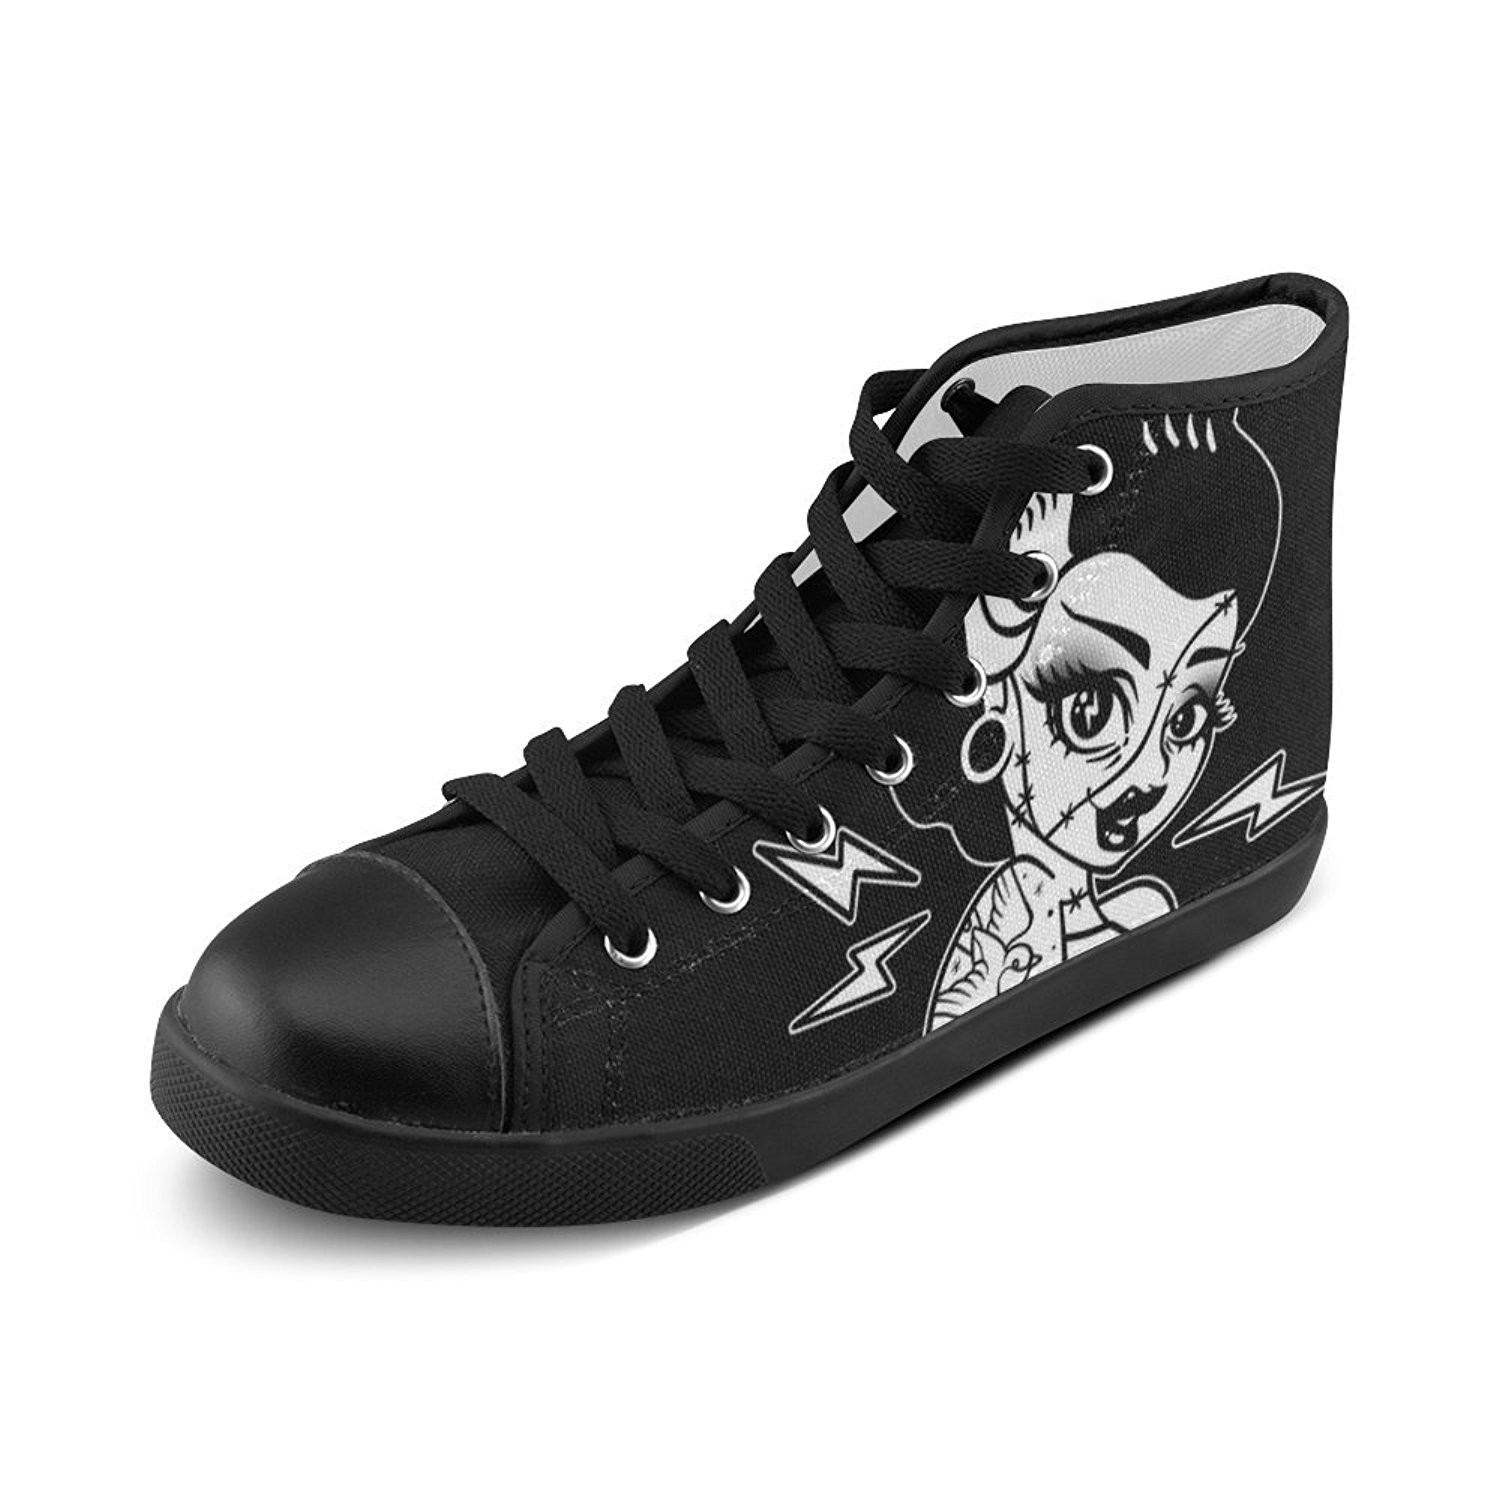 556a259cfa4c35 Get Quotations · Artsadd Artsdd Custom Frankie Pinup Chuck Taylors High Top  Canvas Shoes For Womens(Model002)